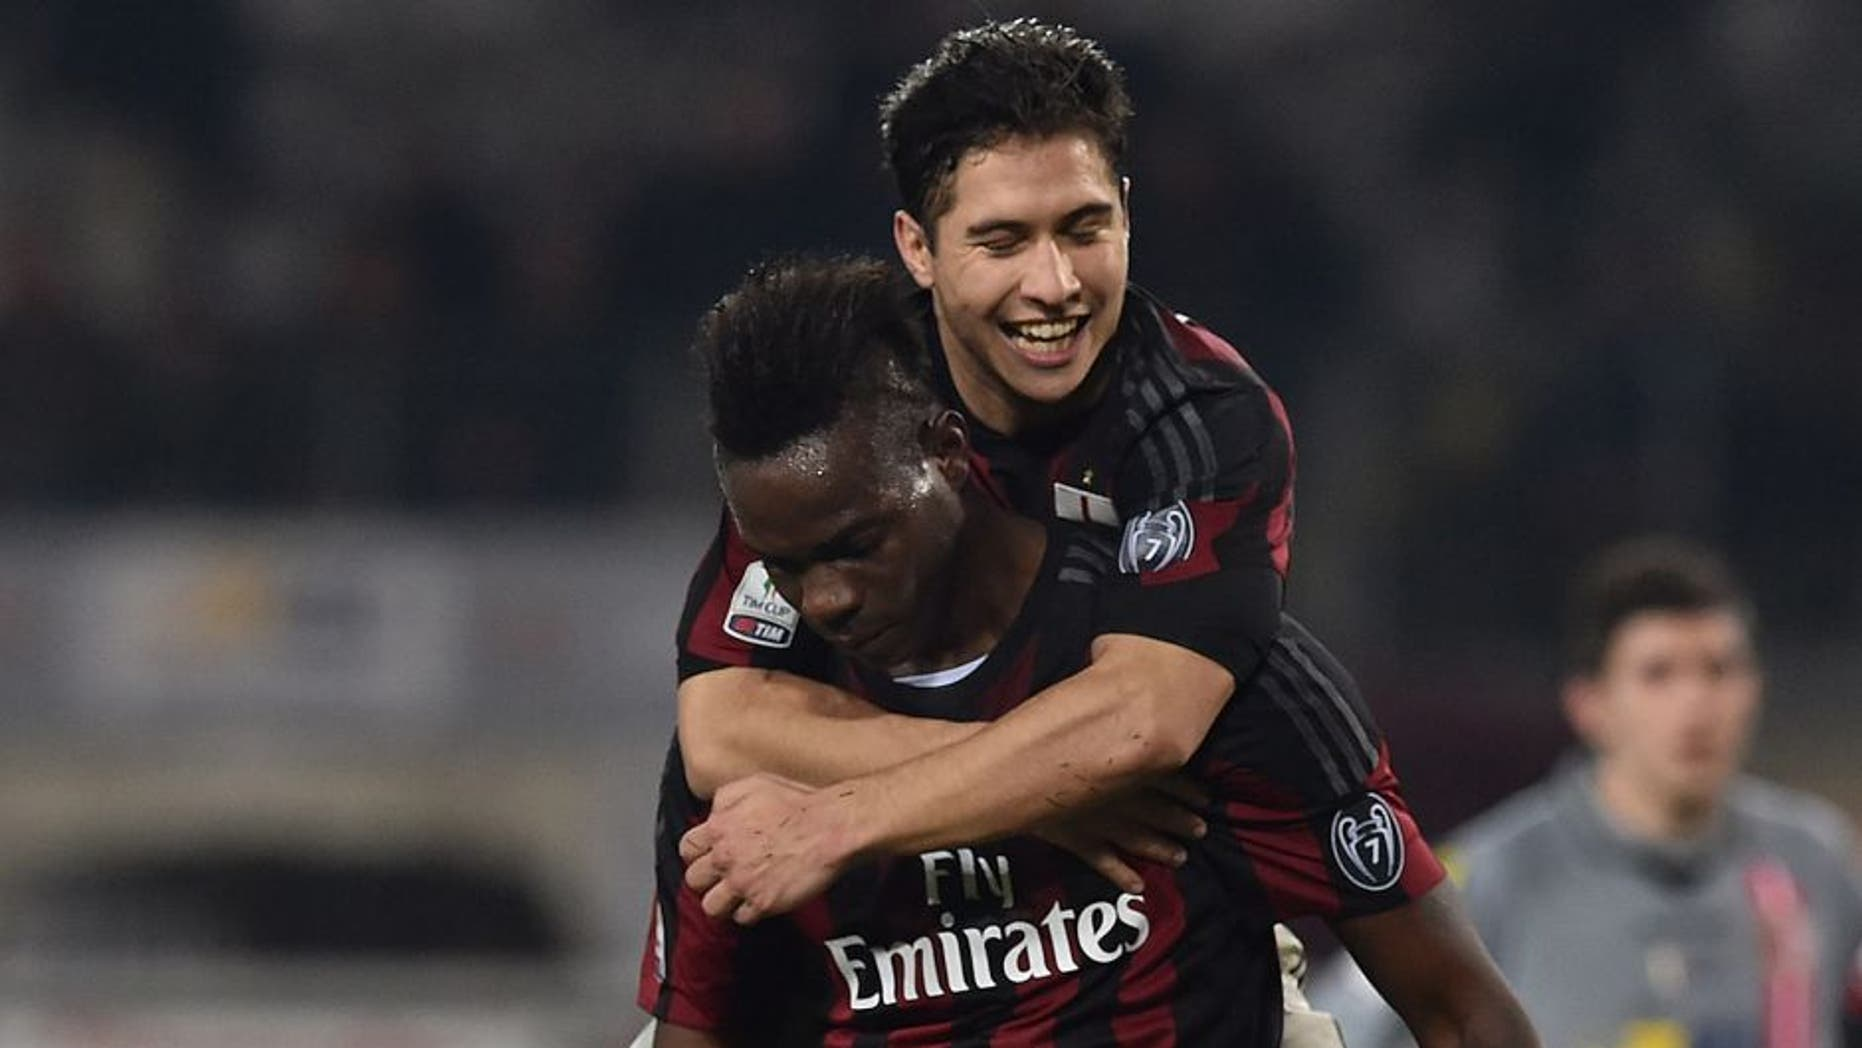 TURIN, ITALY - JANUARY 26: Mario Balotelli (C) of AC Milan celebrates after scoring the opening goal from the penalty spot with team mate Jose Mauri during the TIM Cup match between US Alessandria and AC Milan at Olimpico Stadium on January 26, 2016 in Turin, Italy. (Photo by Valerio Pennicino/Getty Images)